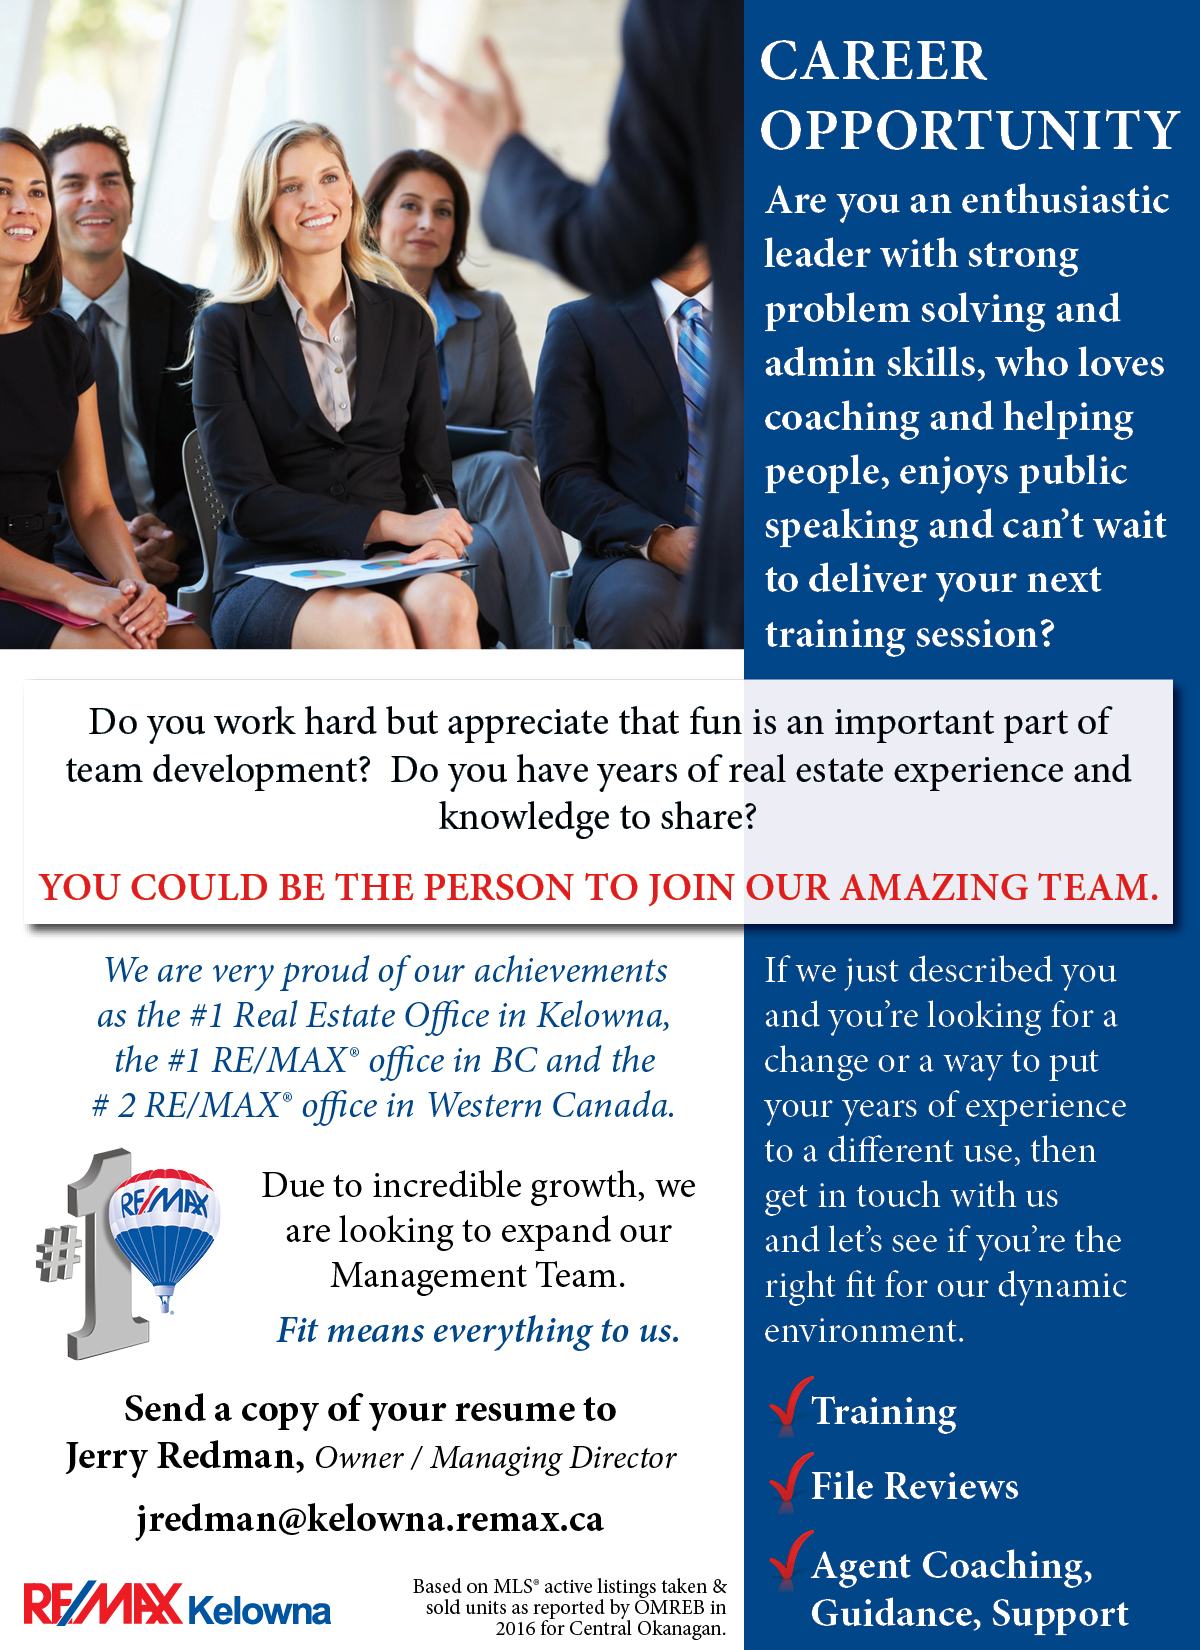 Remax Kelowna Career Opportunity